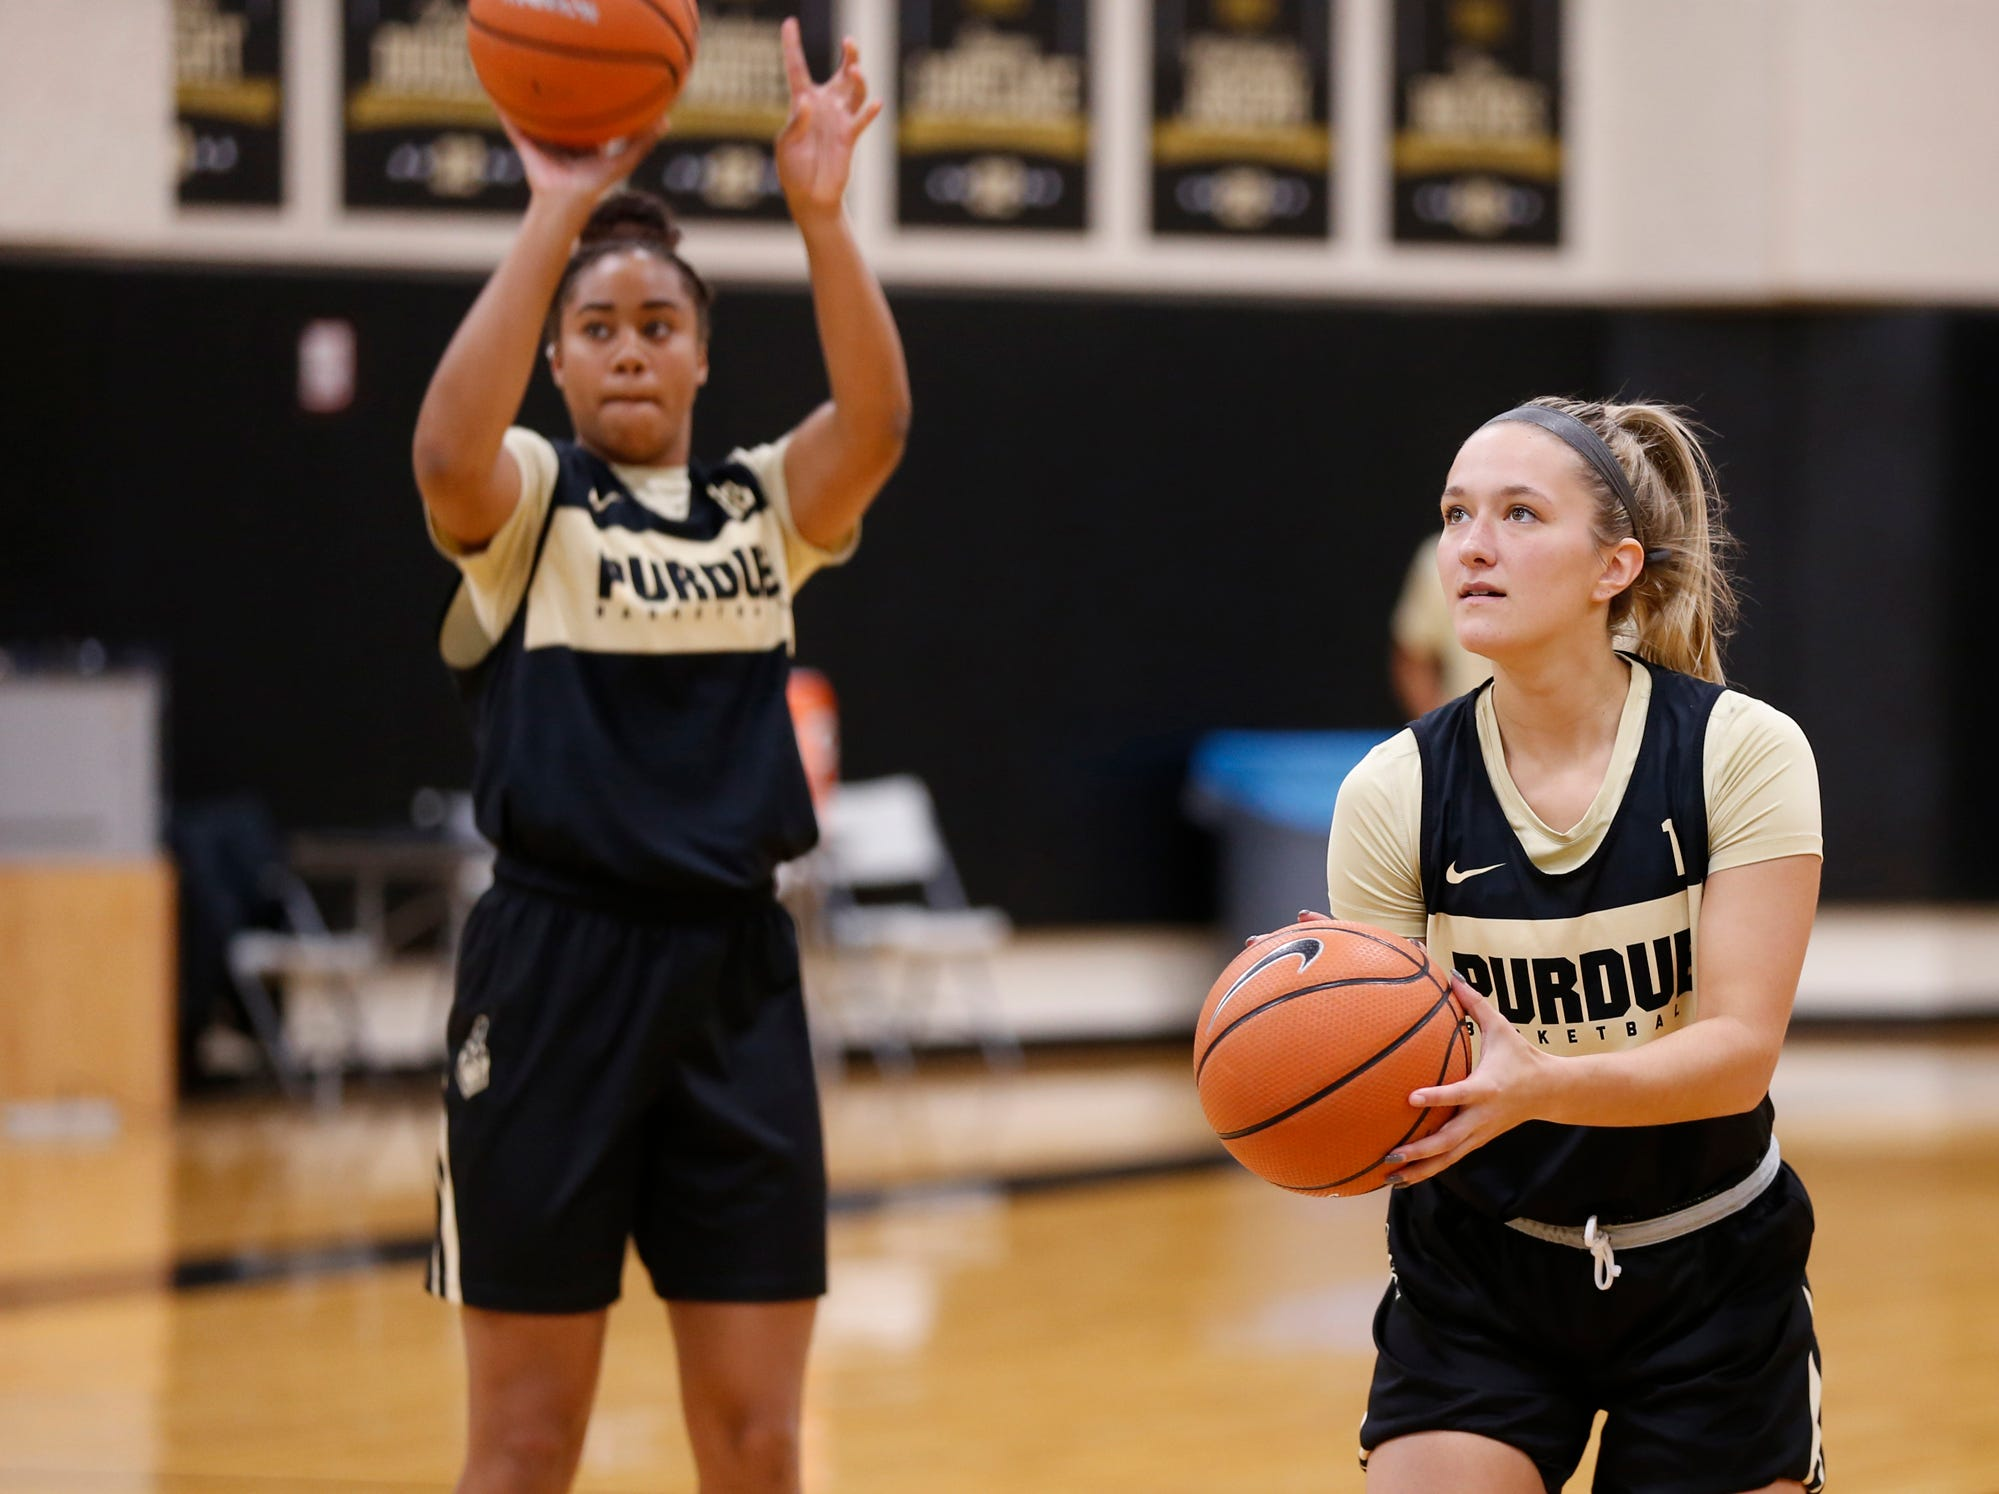 Karissa McLaughlin, right, lines up a shot before the start of the practice for Purdue women's basketball Wednesday, September 26, 2018, at Cardinal Court in Mackey Arena.